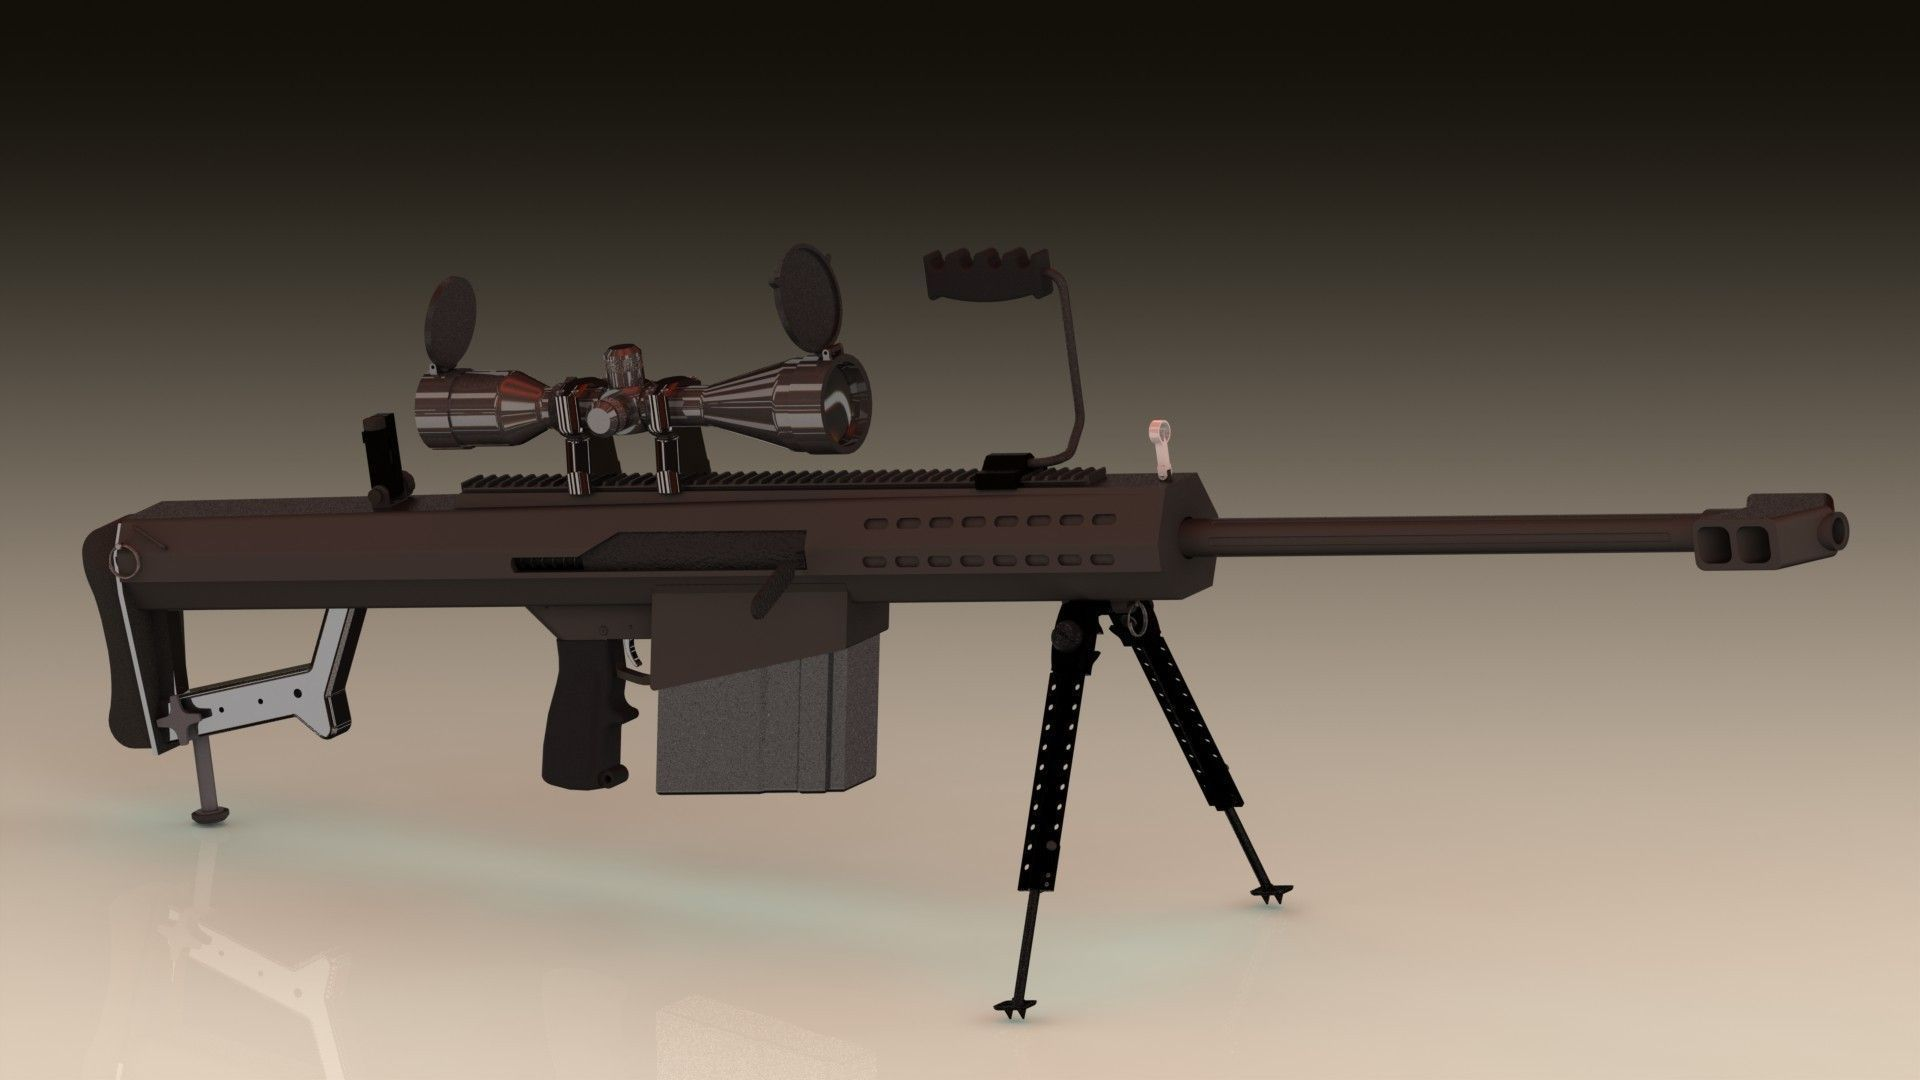 m107 sniper rifle - photo #8